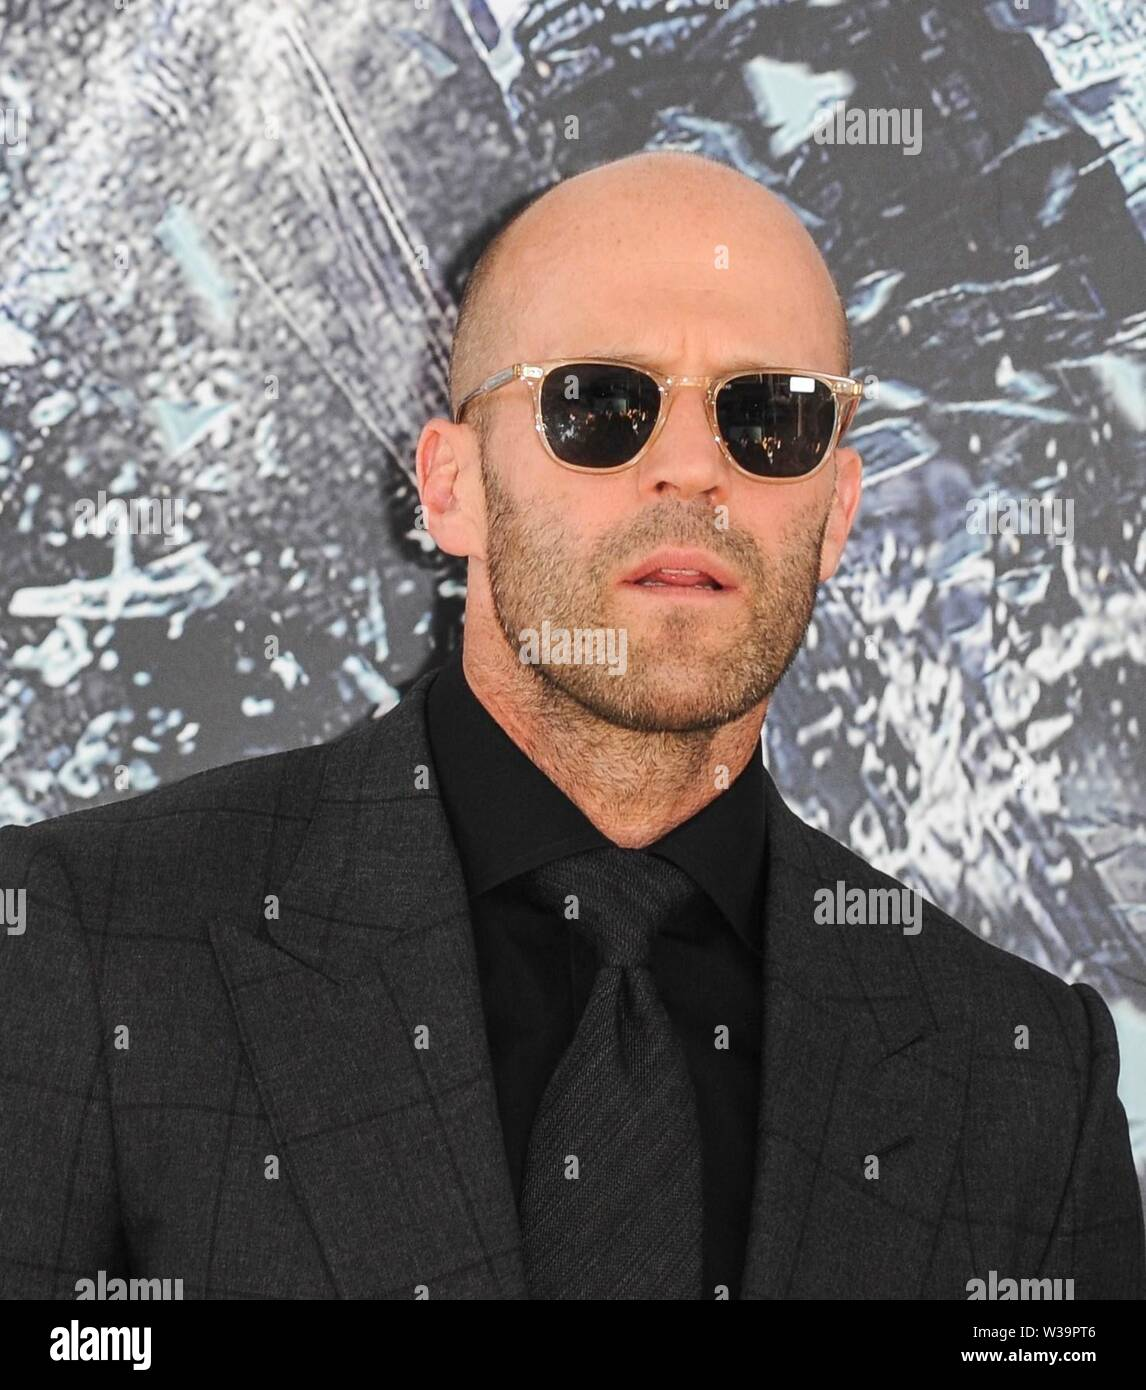 Los Angeles, CA, USA. 13th July, 2019. Jason Statham at arrivals for FAST & FURIOUS PRESENTS: HOBBS & SHAW Premiere, The Dolby Theatre at Hollywood and Highland Center, Los Angeles, CA July 13, 2019. Credit: Elizabeth Goodenough/Everett Collection/Alamy Live News Stock Photo